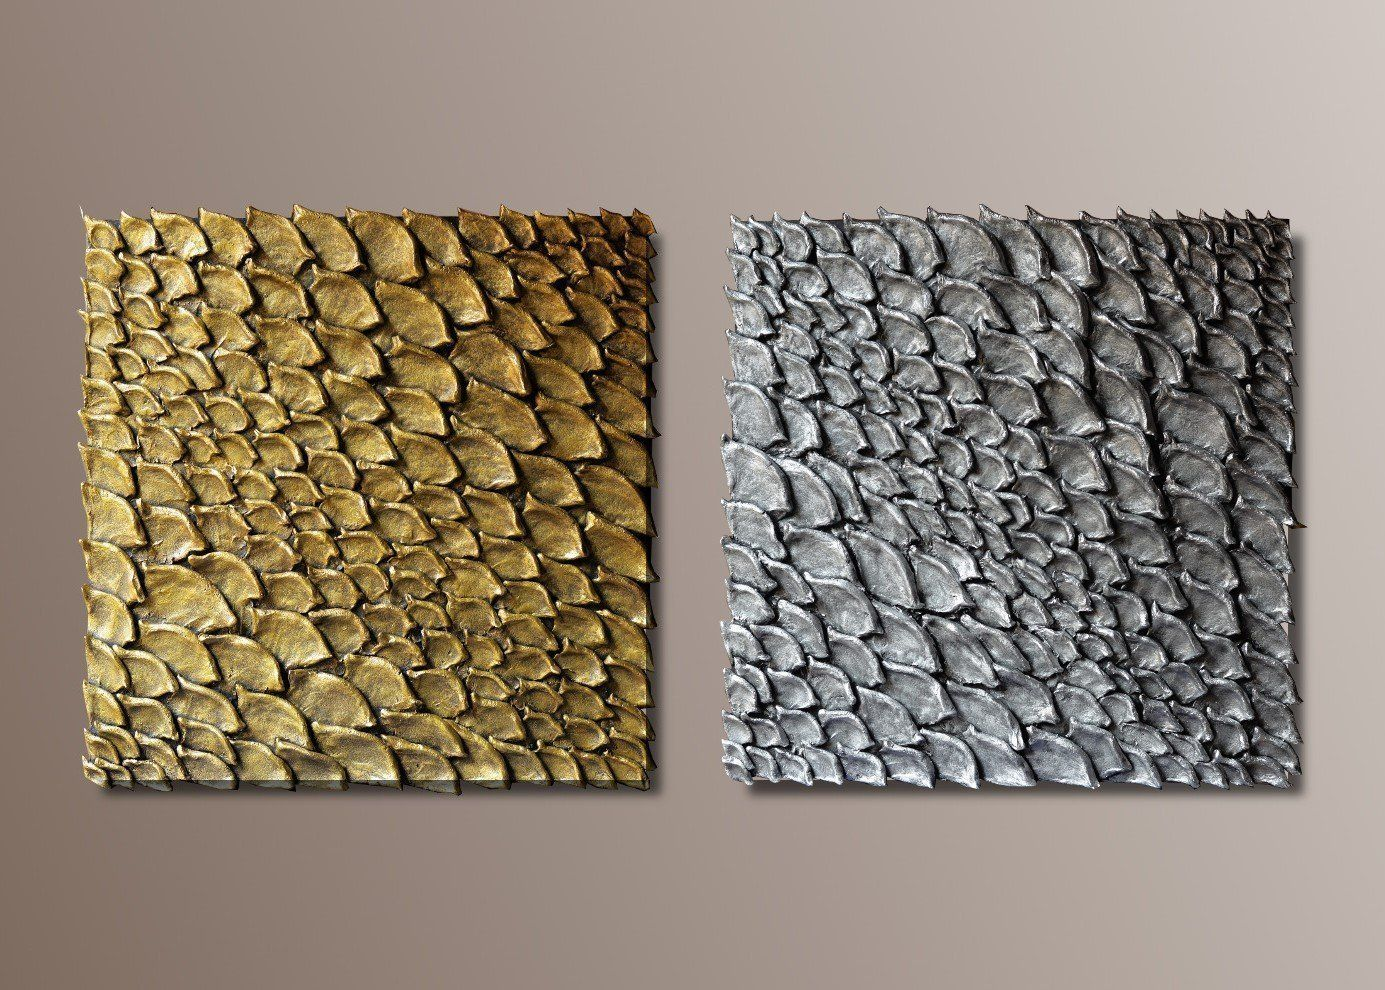 Set of 2 Large Wall Sculptures - Square Wall Decor - 3D Wall Art - Golden